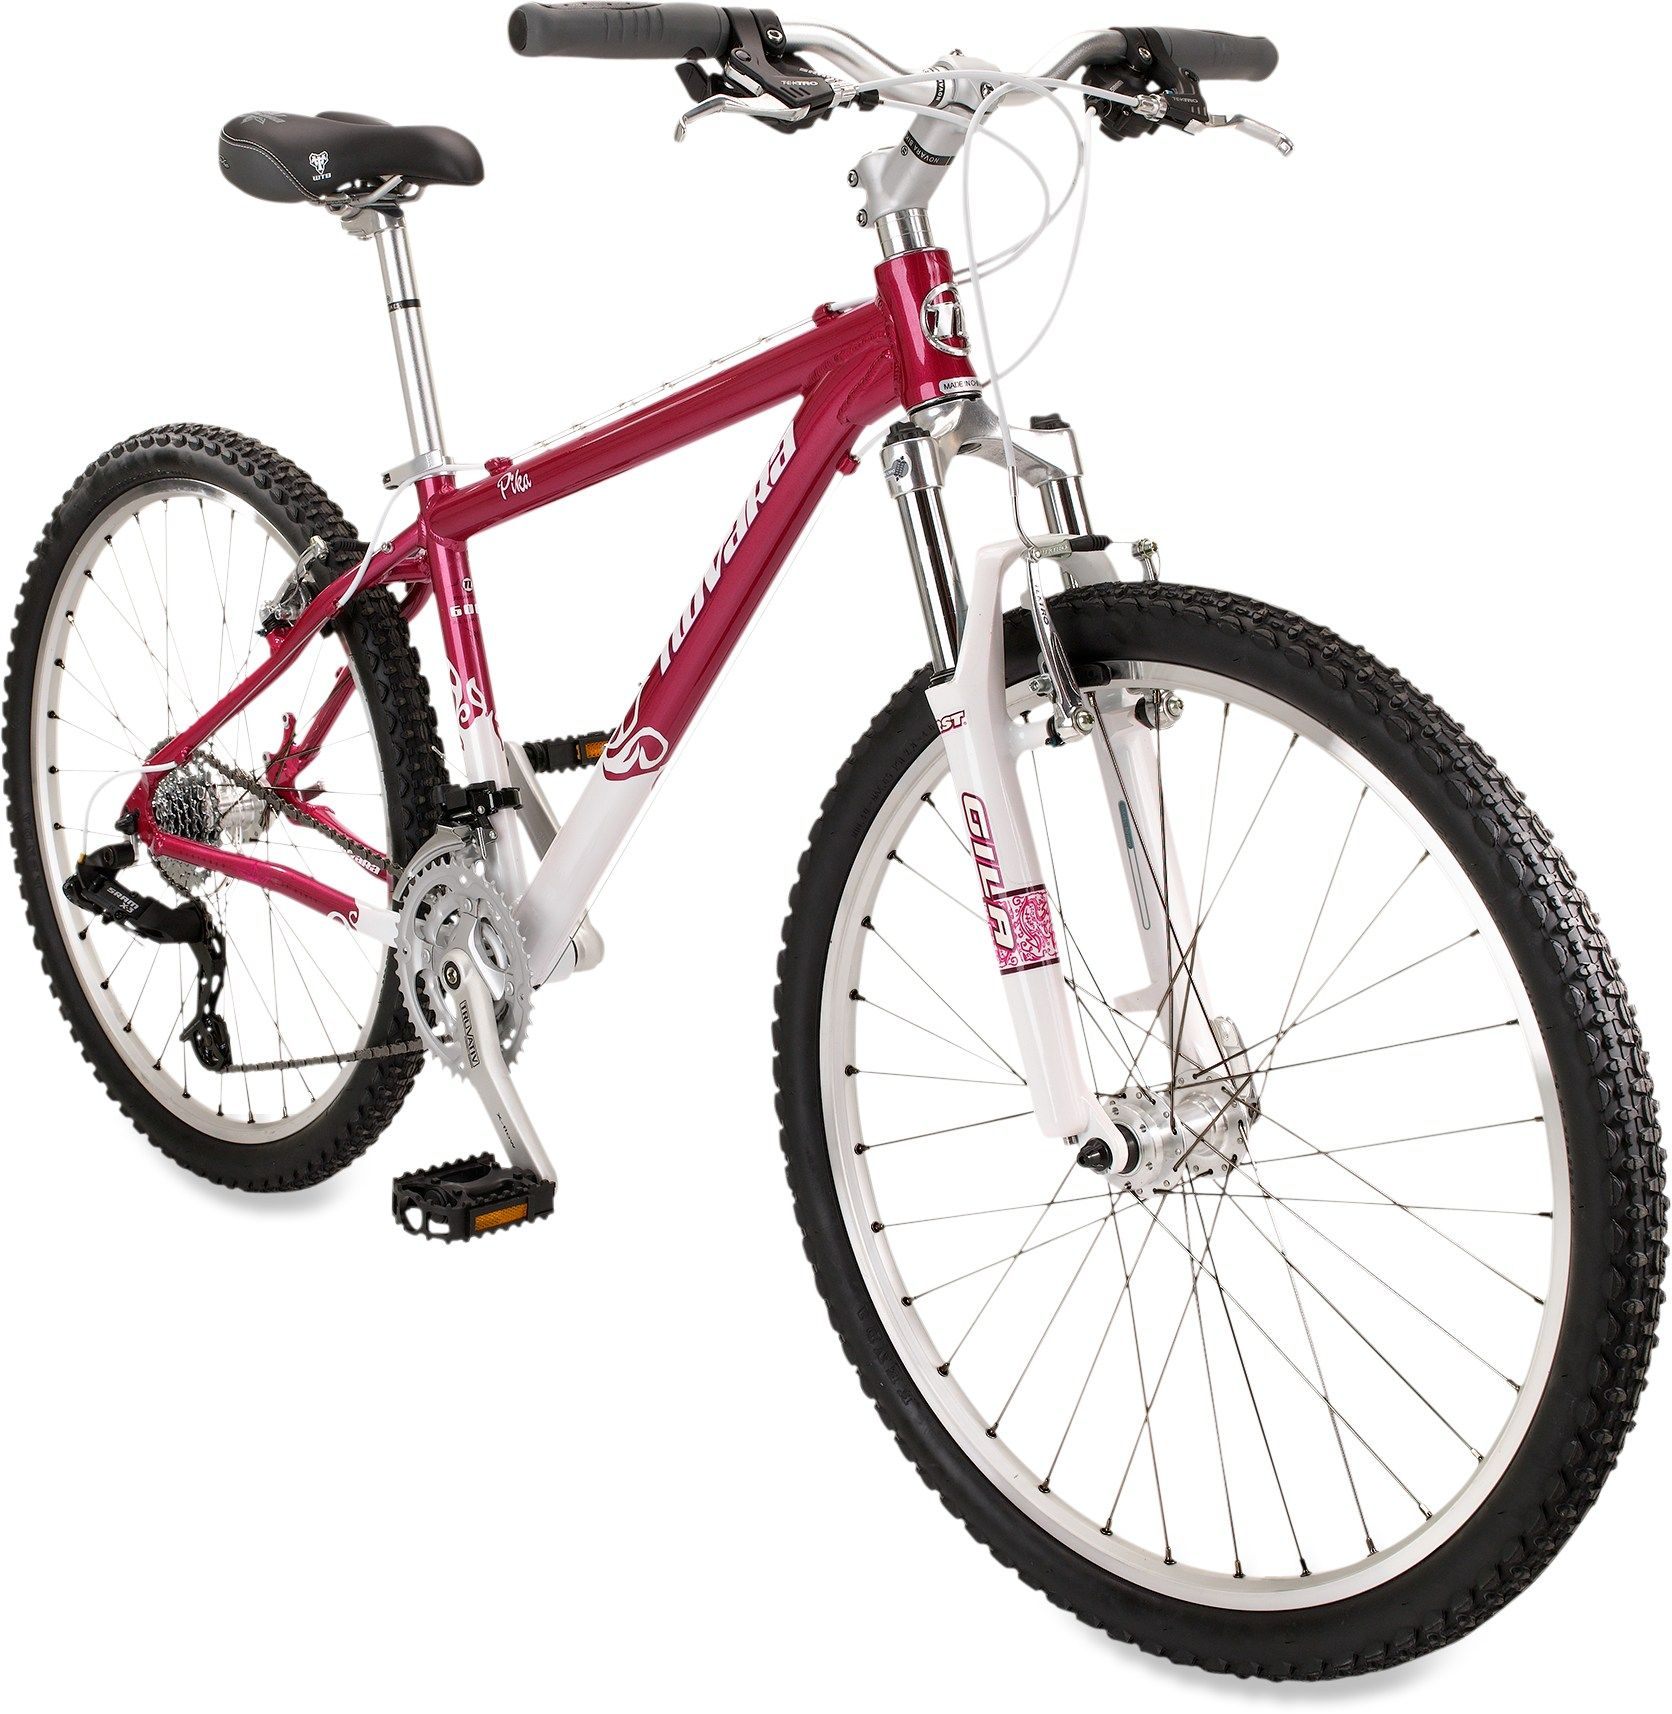 Adorable hot pink mountain bike. She might be my next!!